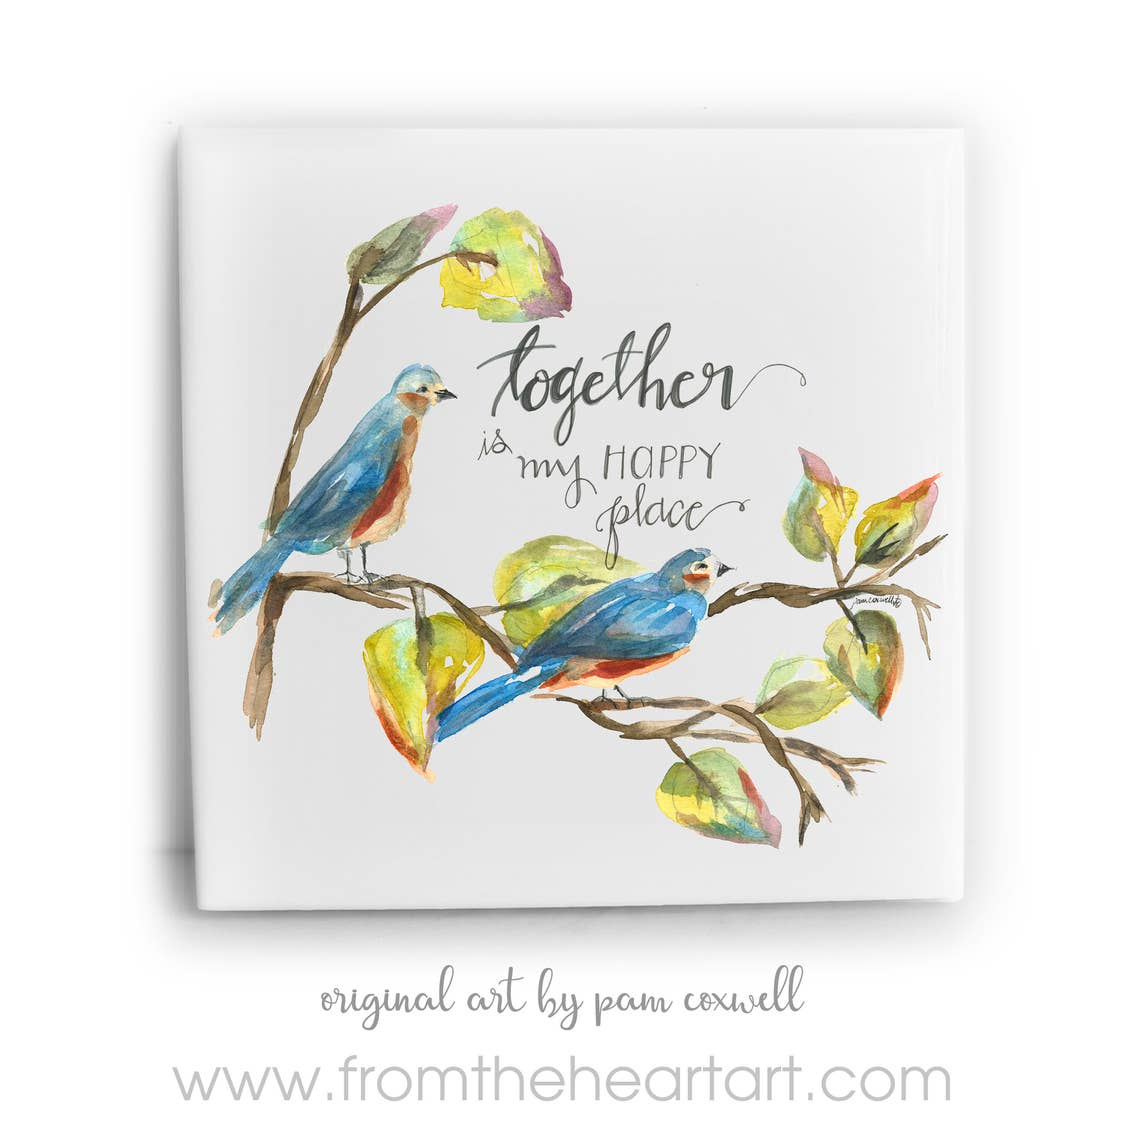 Bluebirds Together Ceramic Tile by Pam Coxwell